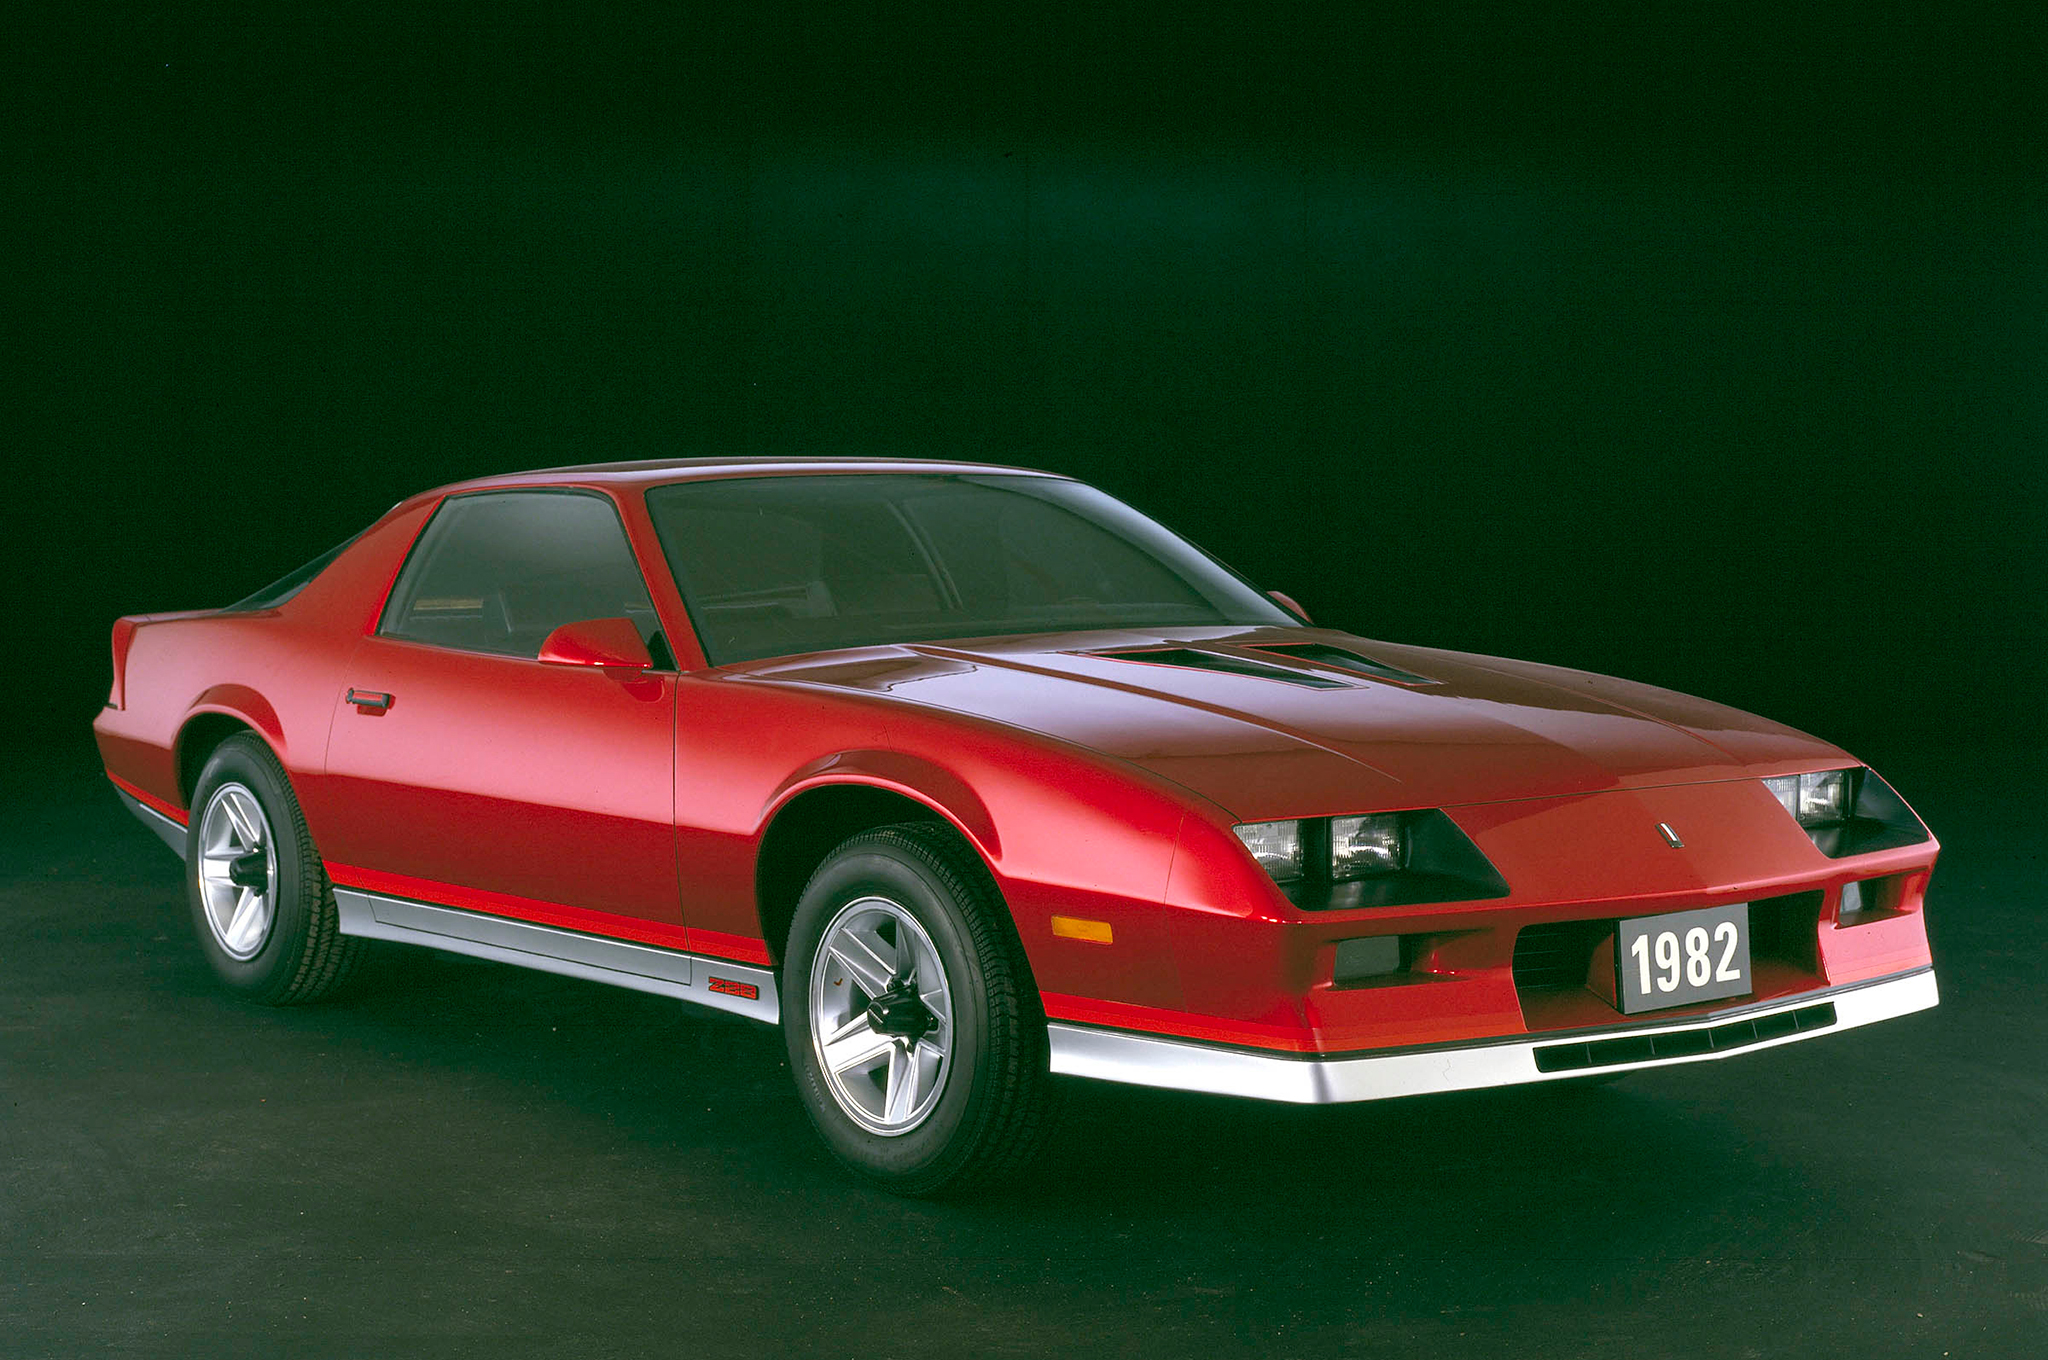 The third-generation Camaro was a radical departure that, like the preceding generation, would help define the culture of its decade. It was also designed as more of a true performance car, with a greater emphasis on aero and a more responsive suspension system, including rack-and-pinion steering and a strut-type front suspension.